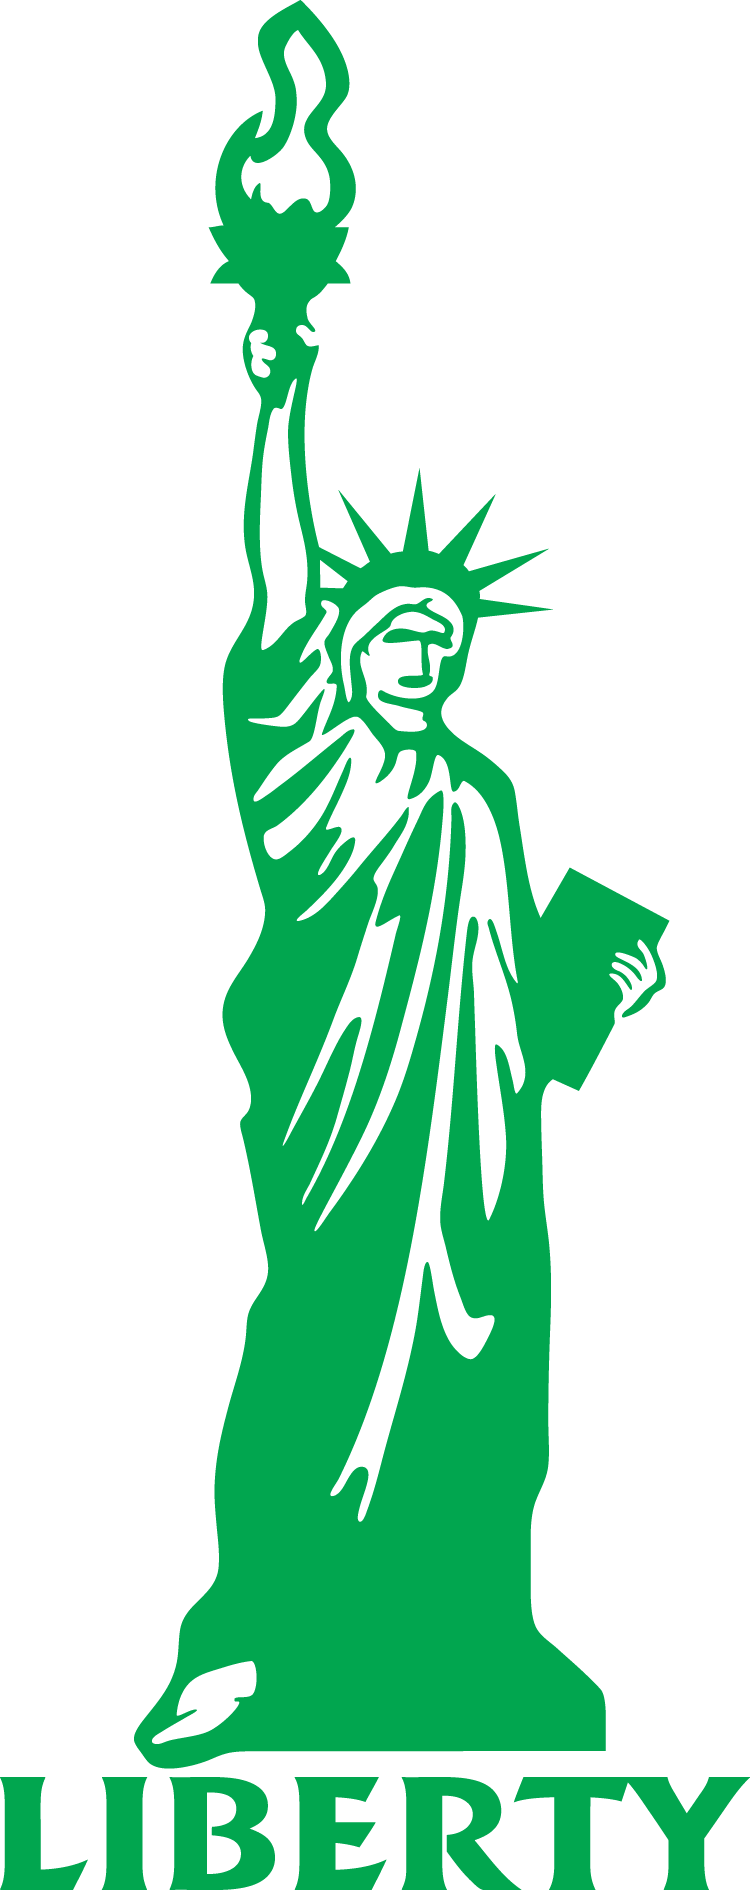 Statue of Liberty (NY2) [NY2] - $4.99 : Eyecandy Decals, Online